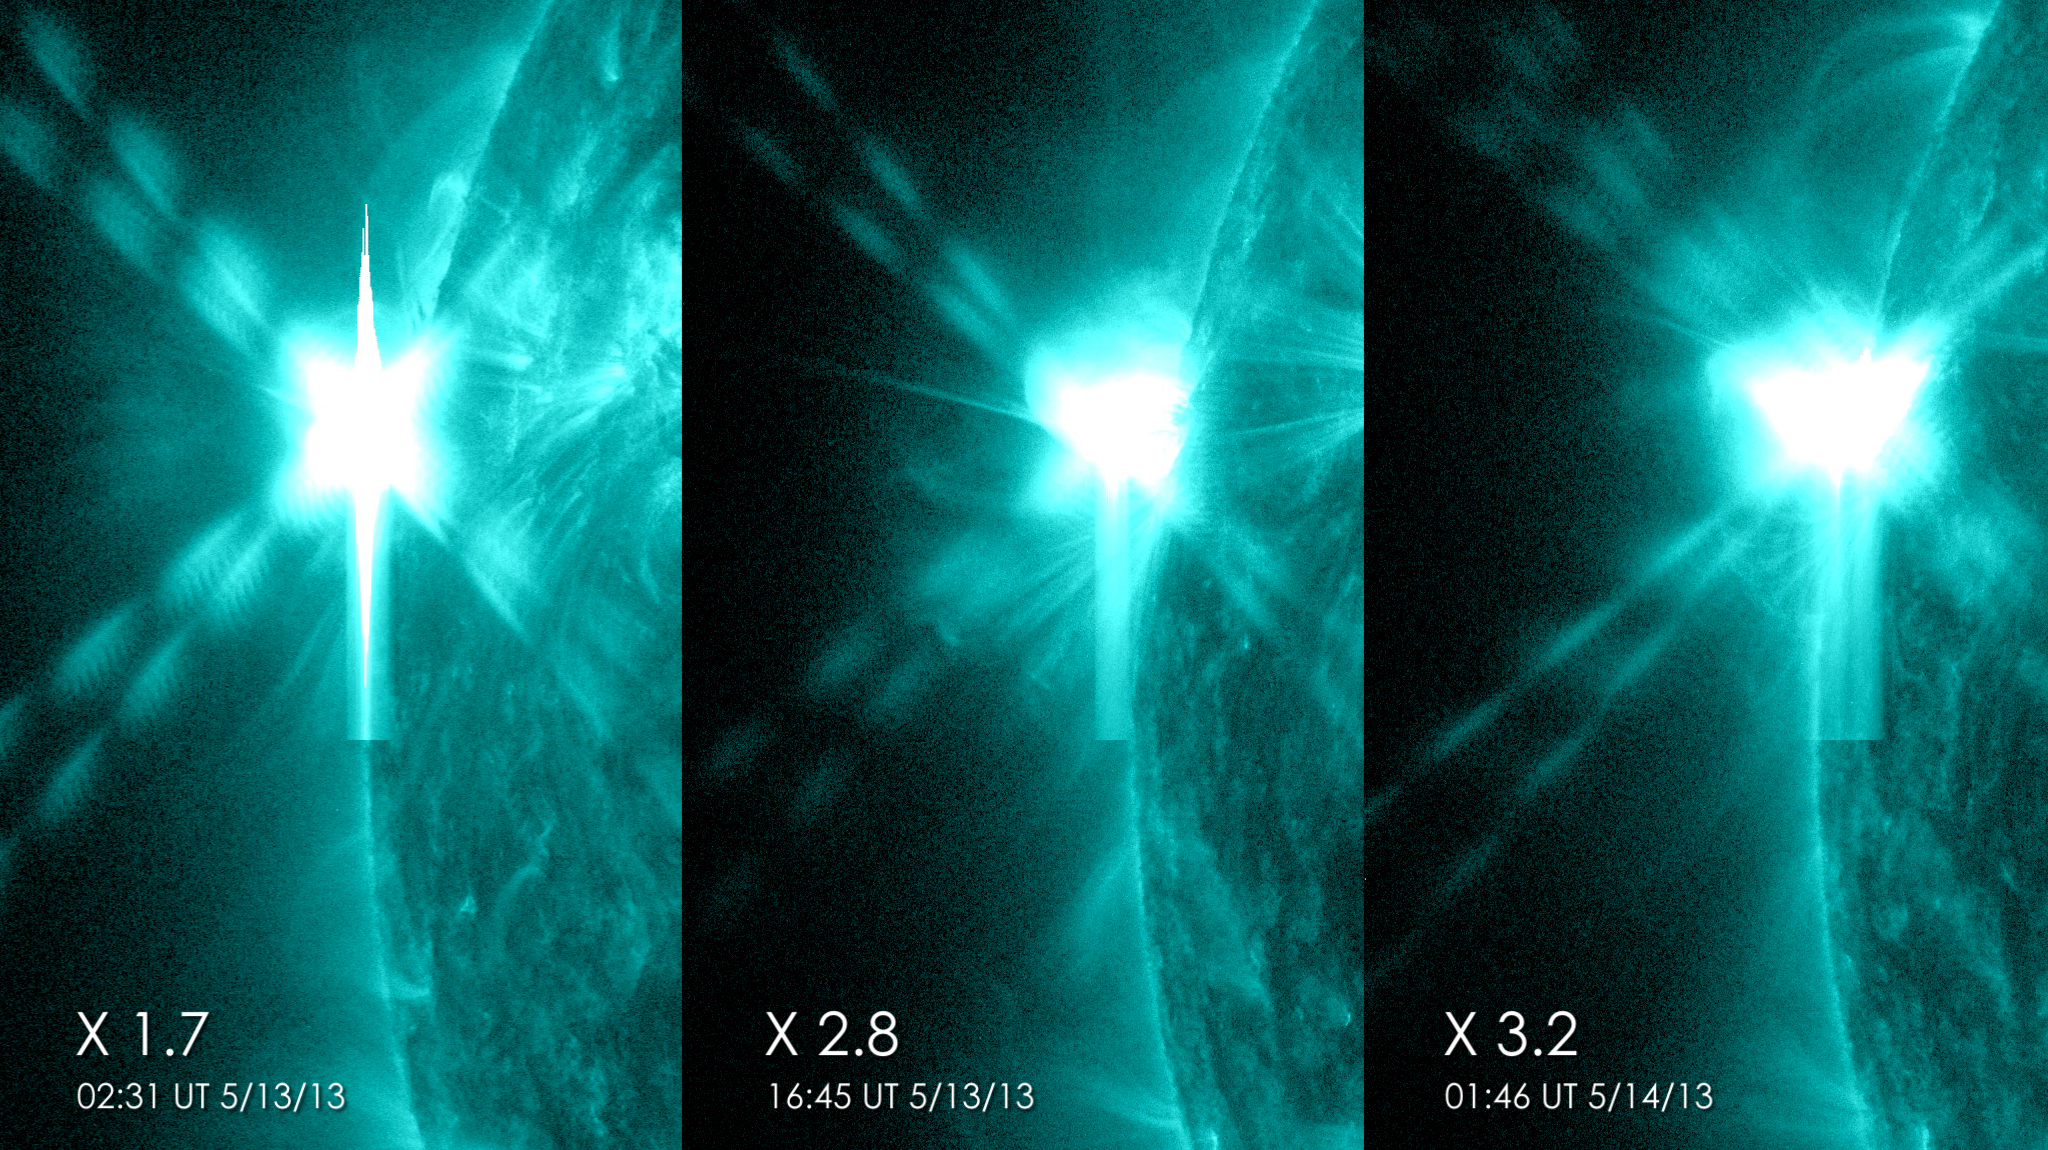 Three X-class flares in 24 hours